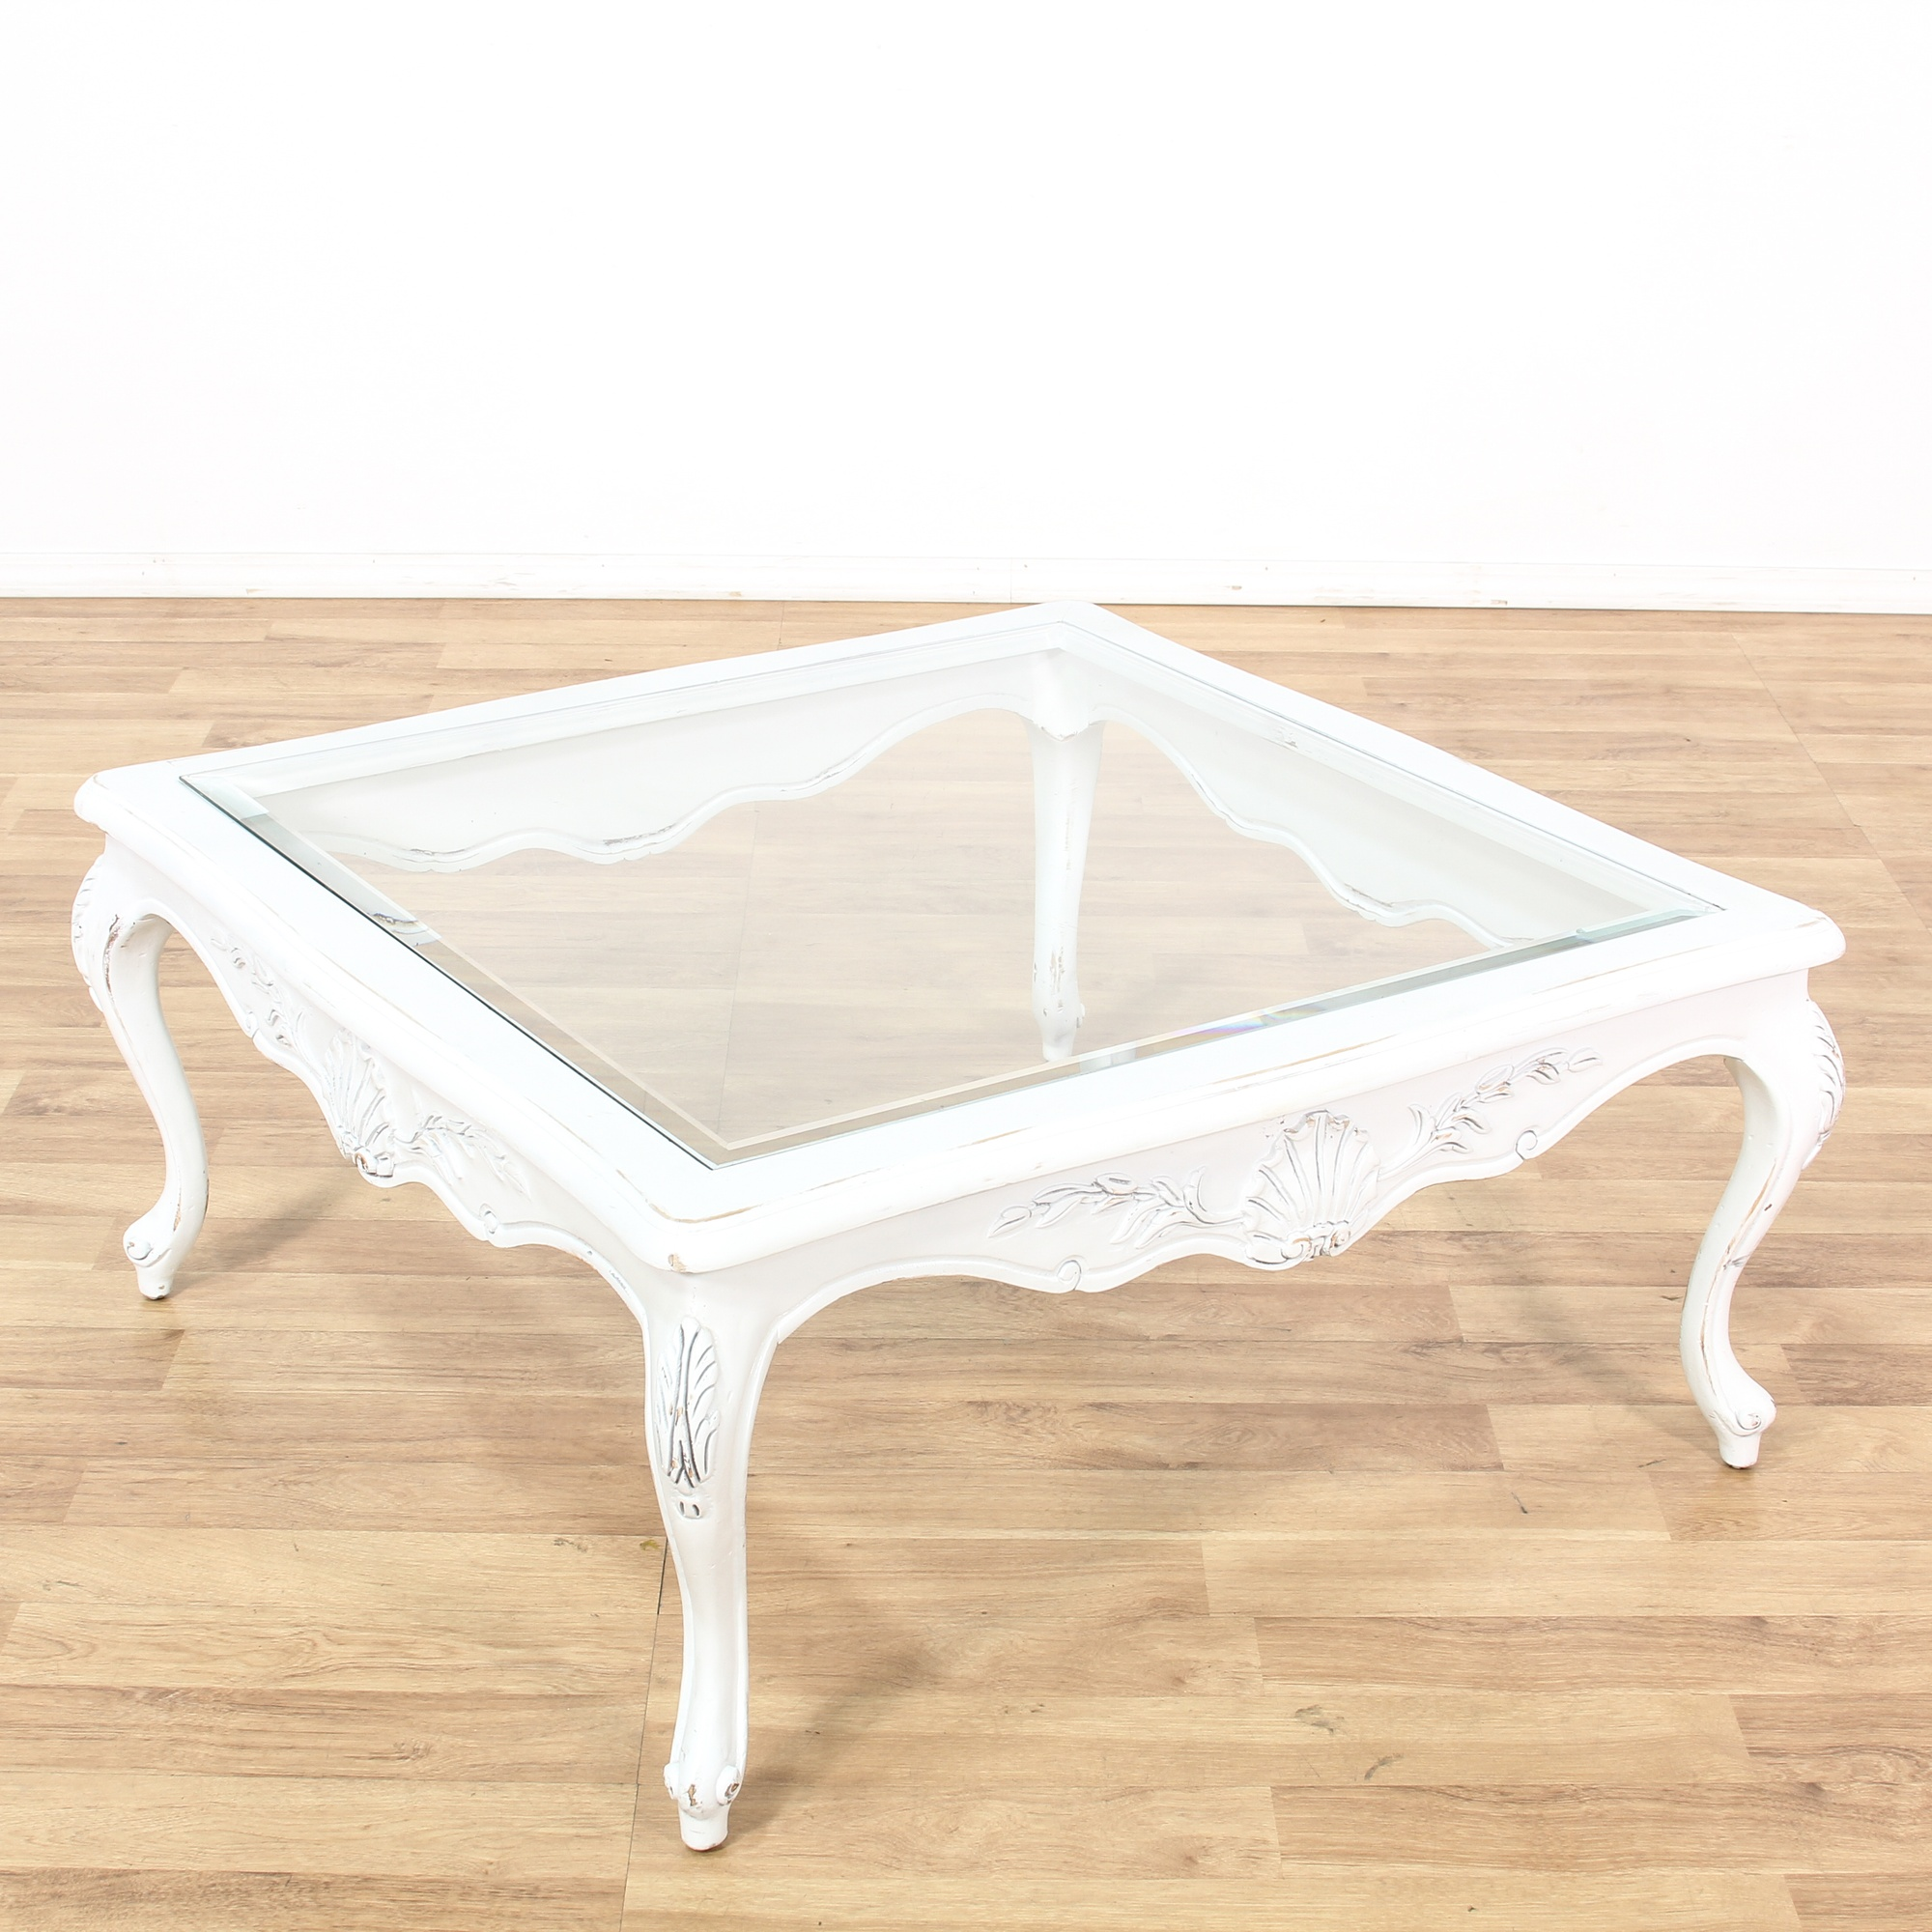 Shabby Chic Coffee Table Nz: Shabby Chic White Square Coffee Table